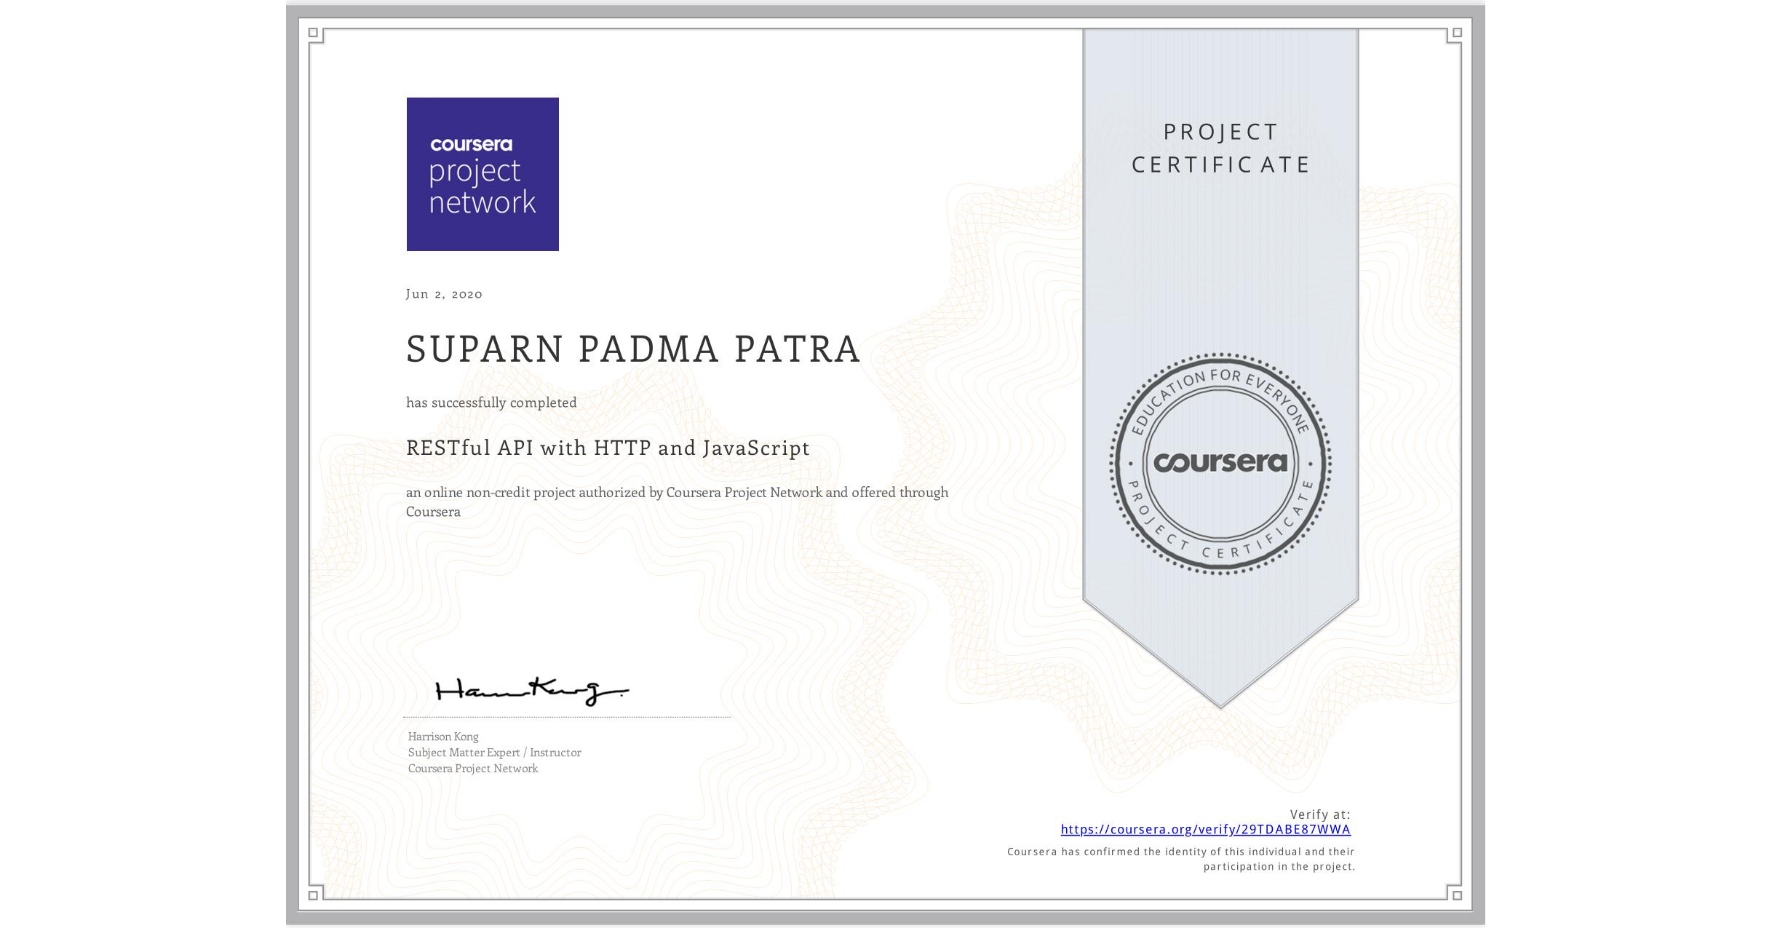 View certificate for SUPARN PADMA  PATRA, RESTful API with HTTP and JavaScript, an online non-credit course authorized by Coursera Project Network and offered through Coursera